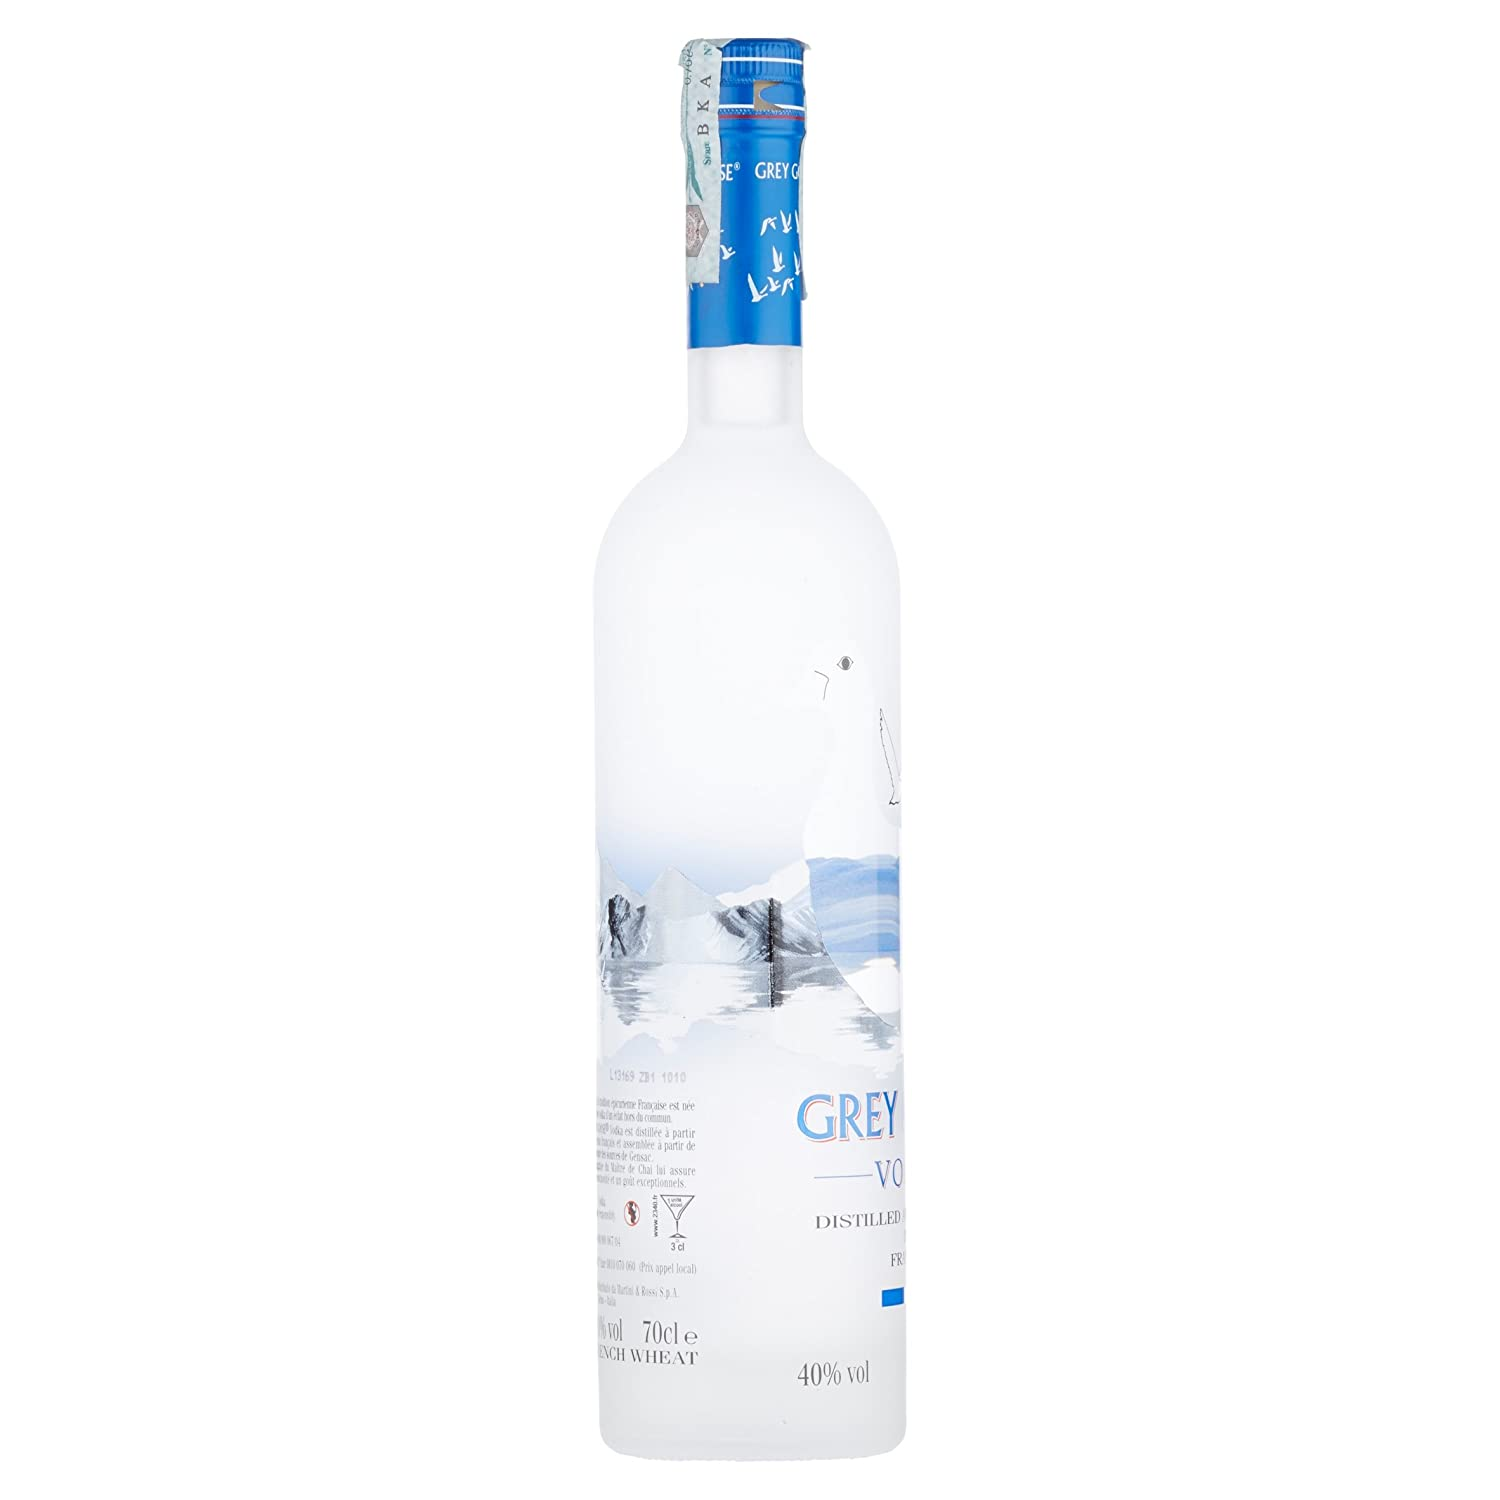 French vodka Gray Gus: characteristics, reviews 16